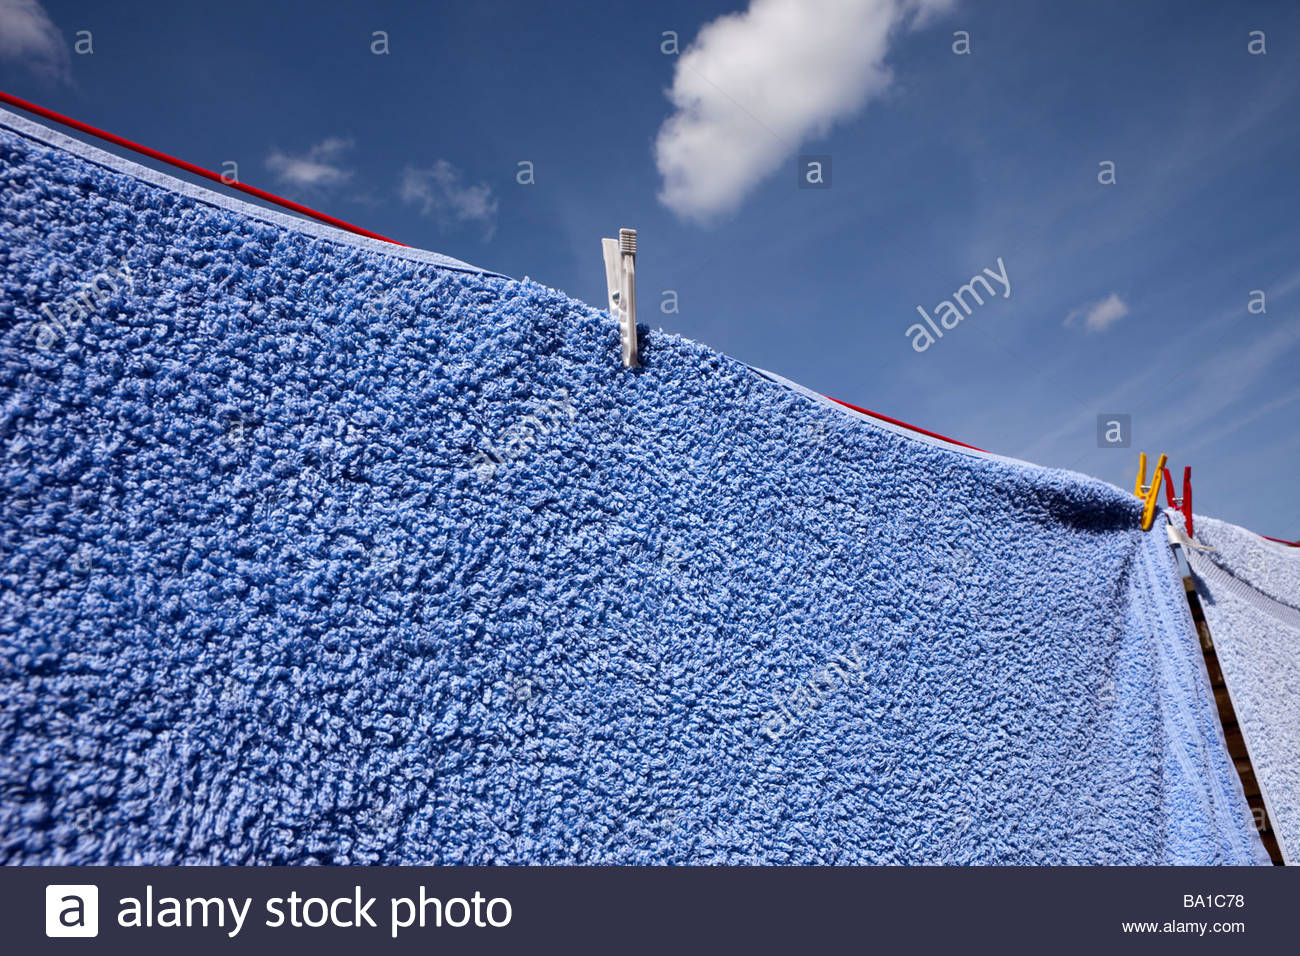 Washing drying on a line - Stock Image